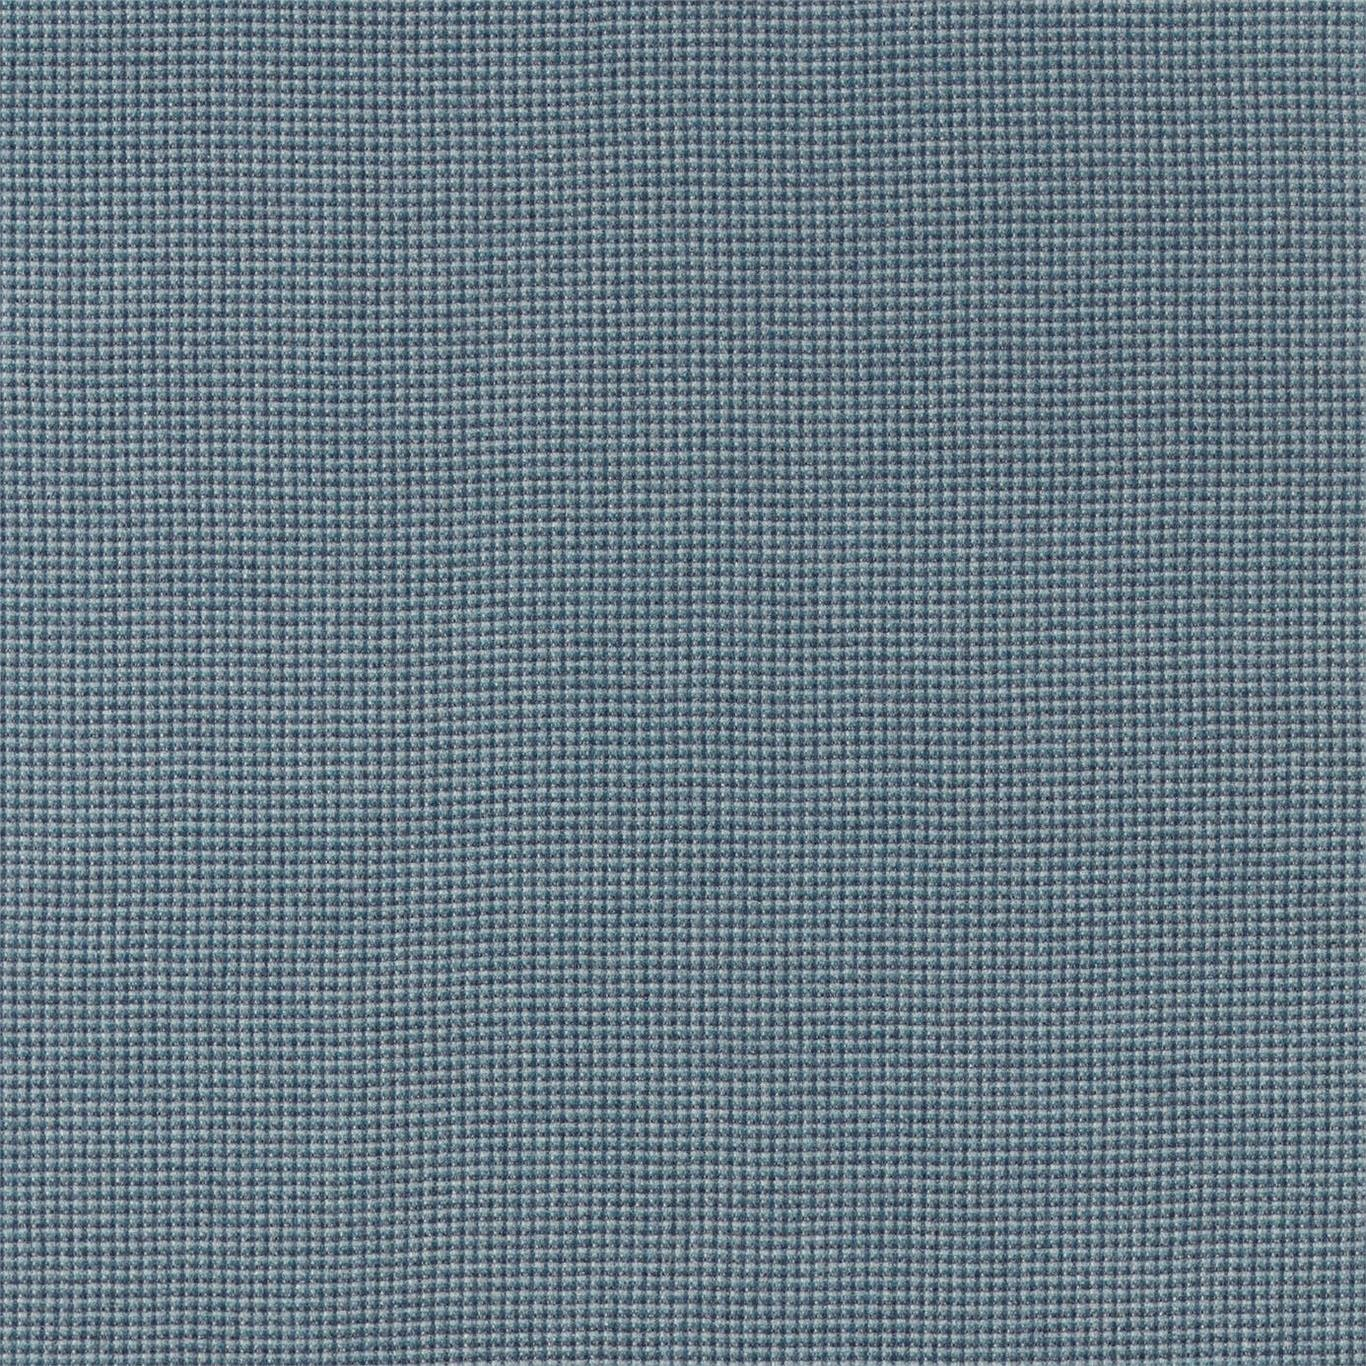 Sanderson Findon Danbury Blue Fabric 236751